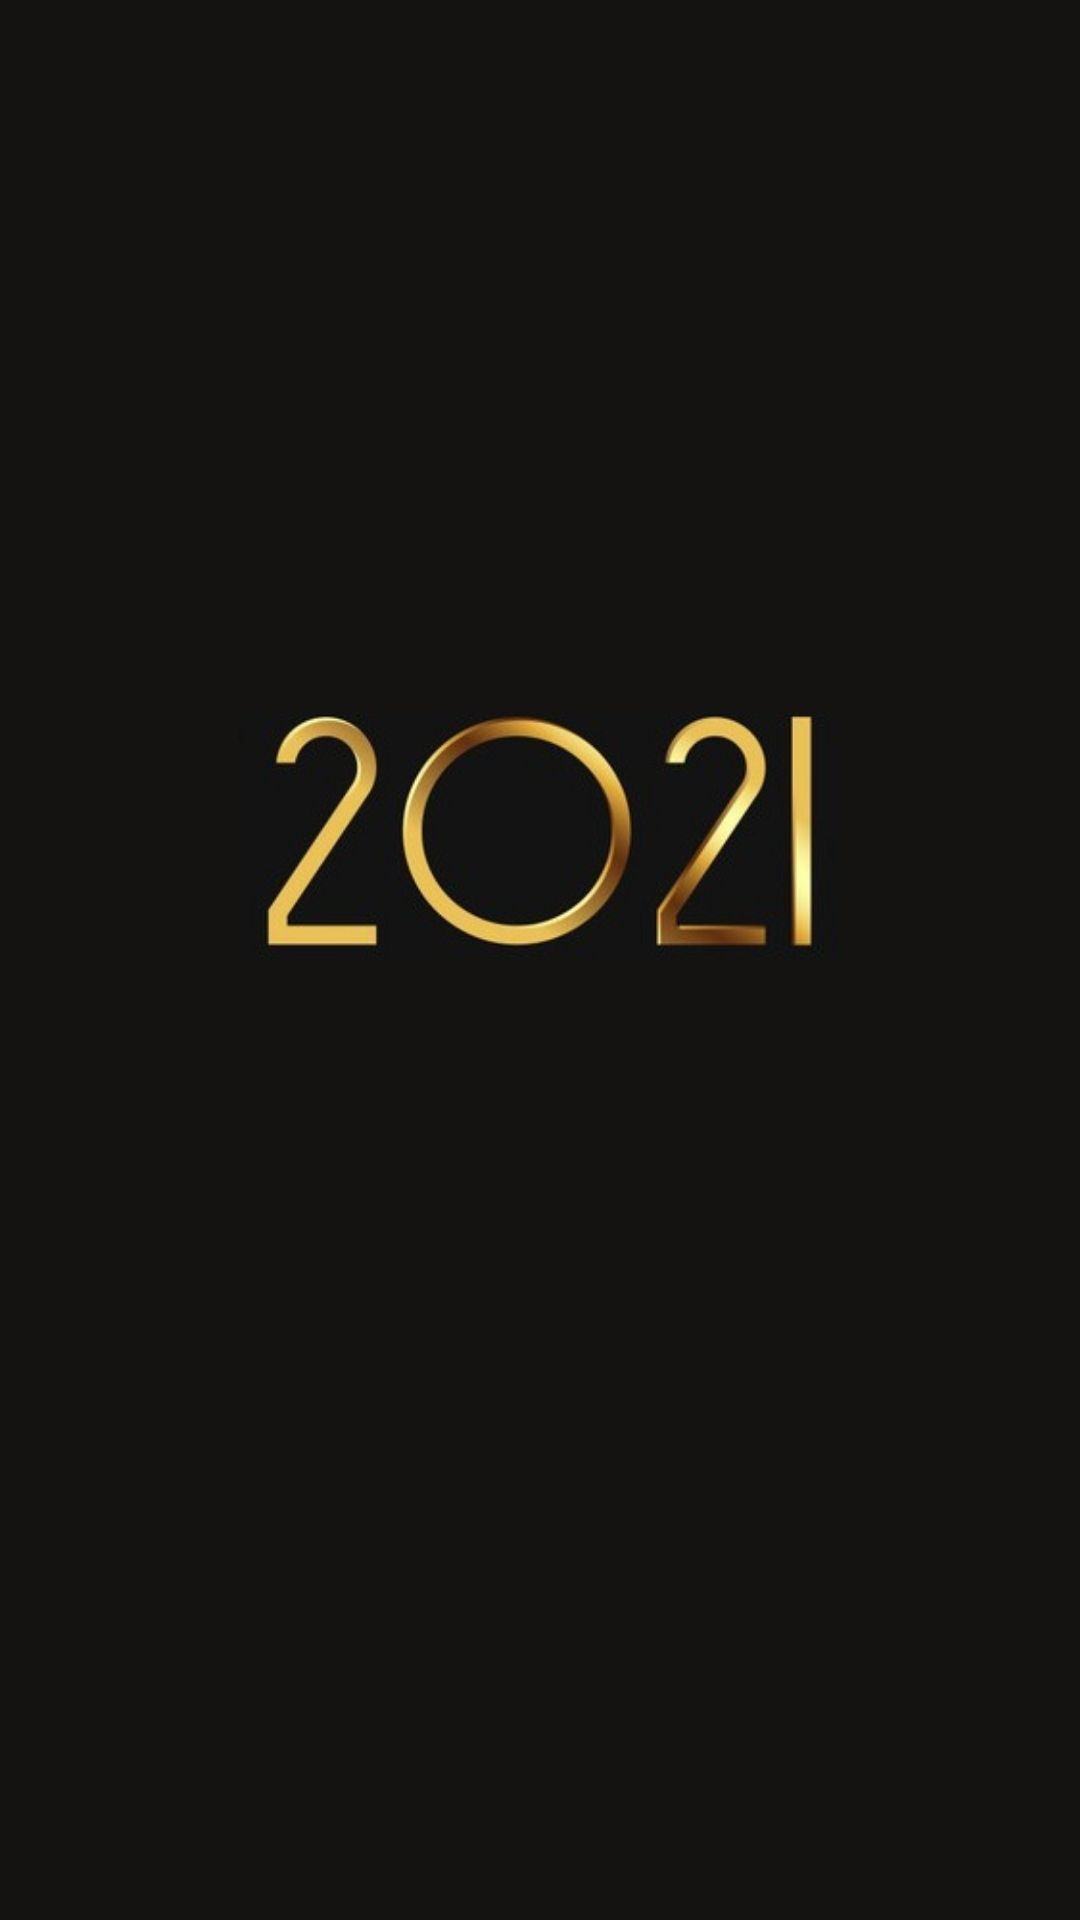 2021 Backgrounds New Years Eve Iphone Wallpapers Hd Free Happy New Year Images Background New New Year Wallpaper 2021